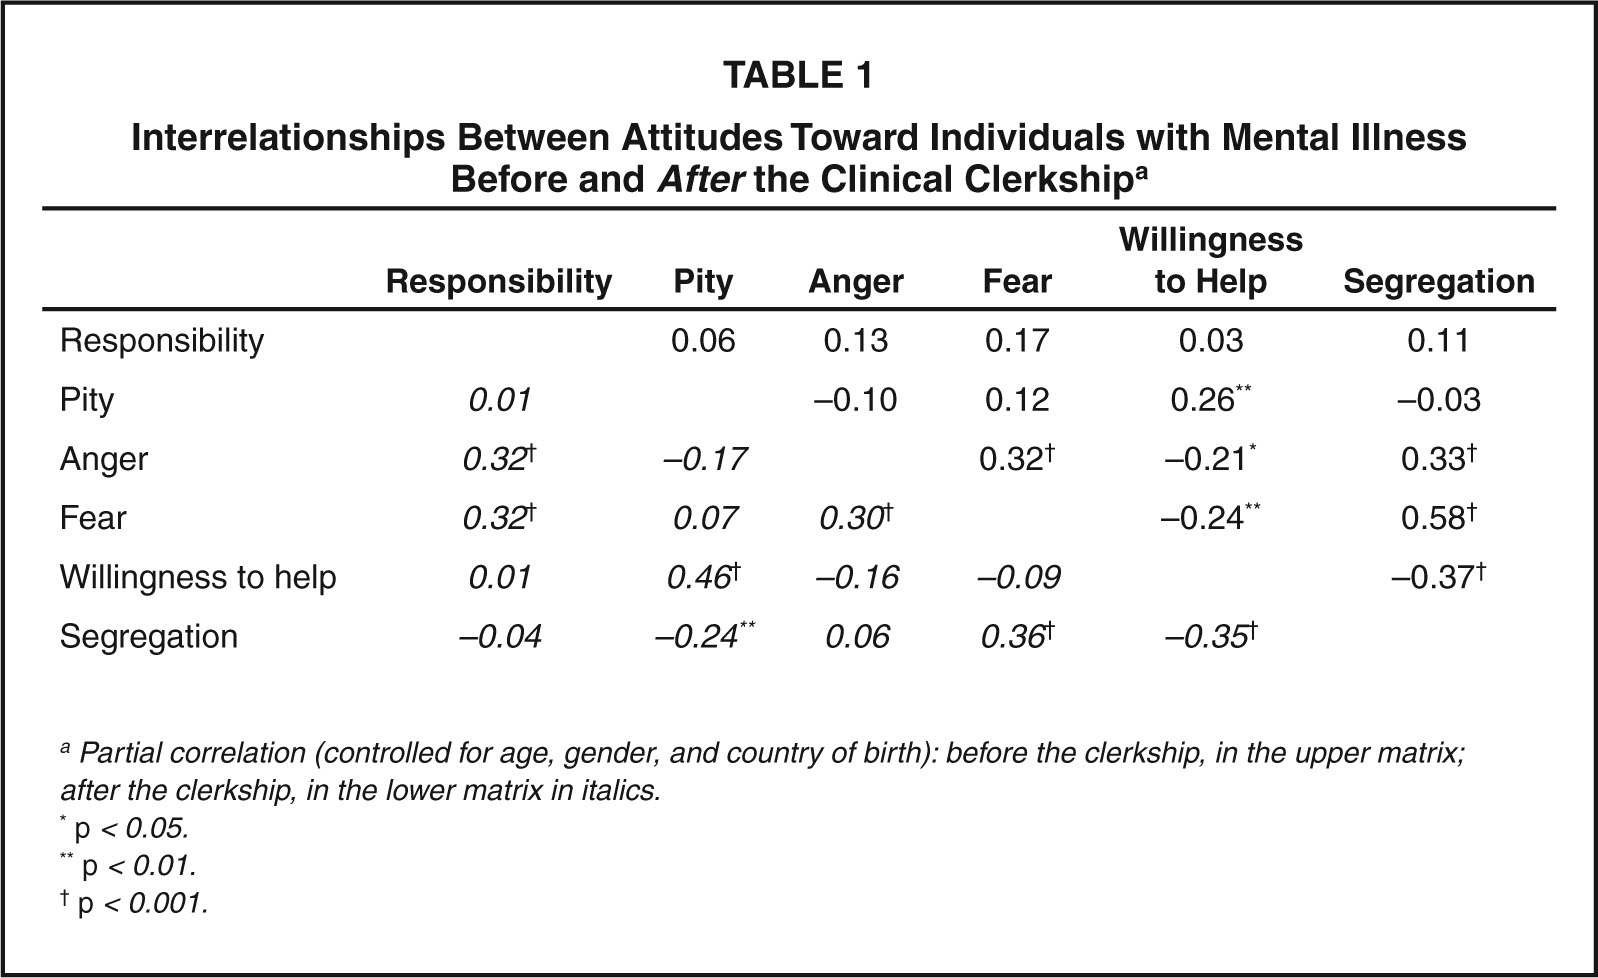 Interrelationships Between Attitudes Toward Individuals with Mental Illness Before and after the Clinical Clerkshipa